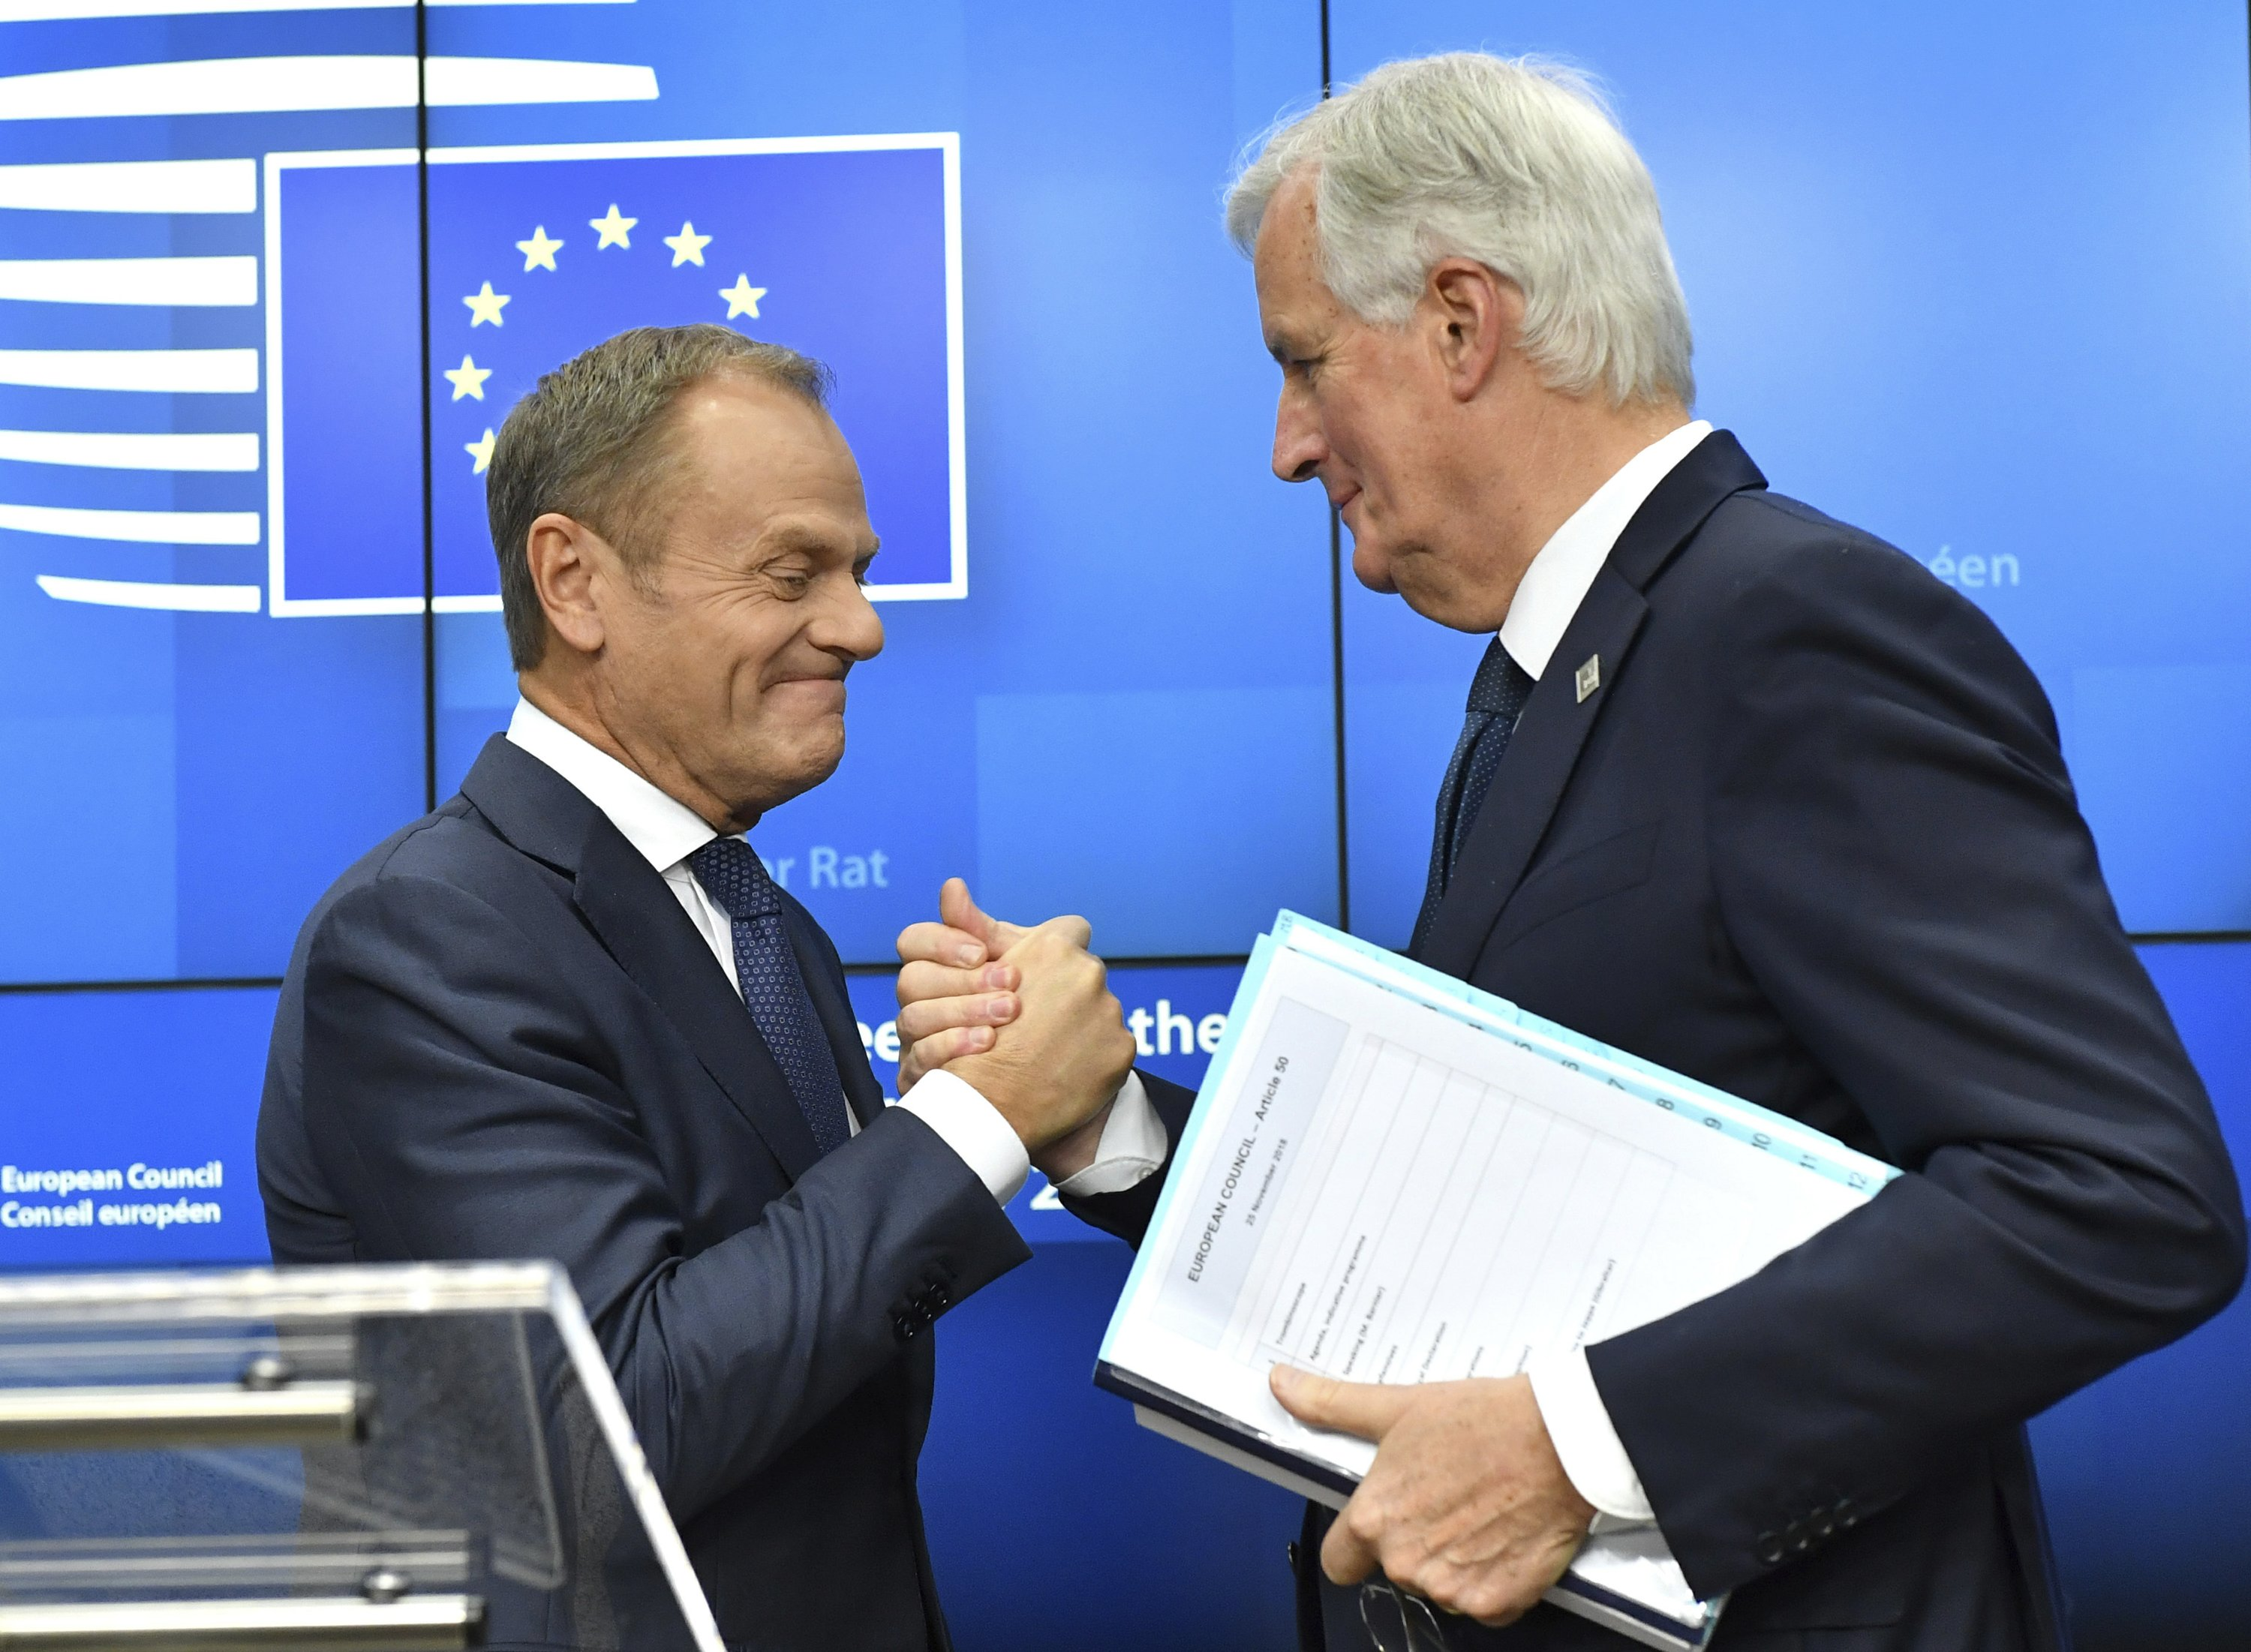 Key points in the EU-UK Brexit agreement